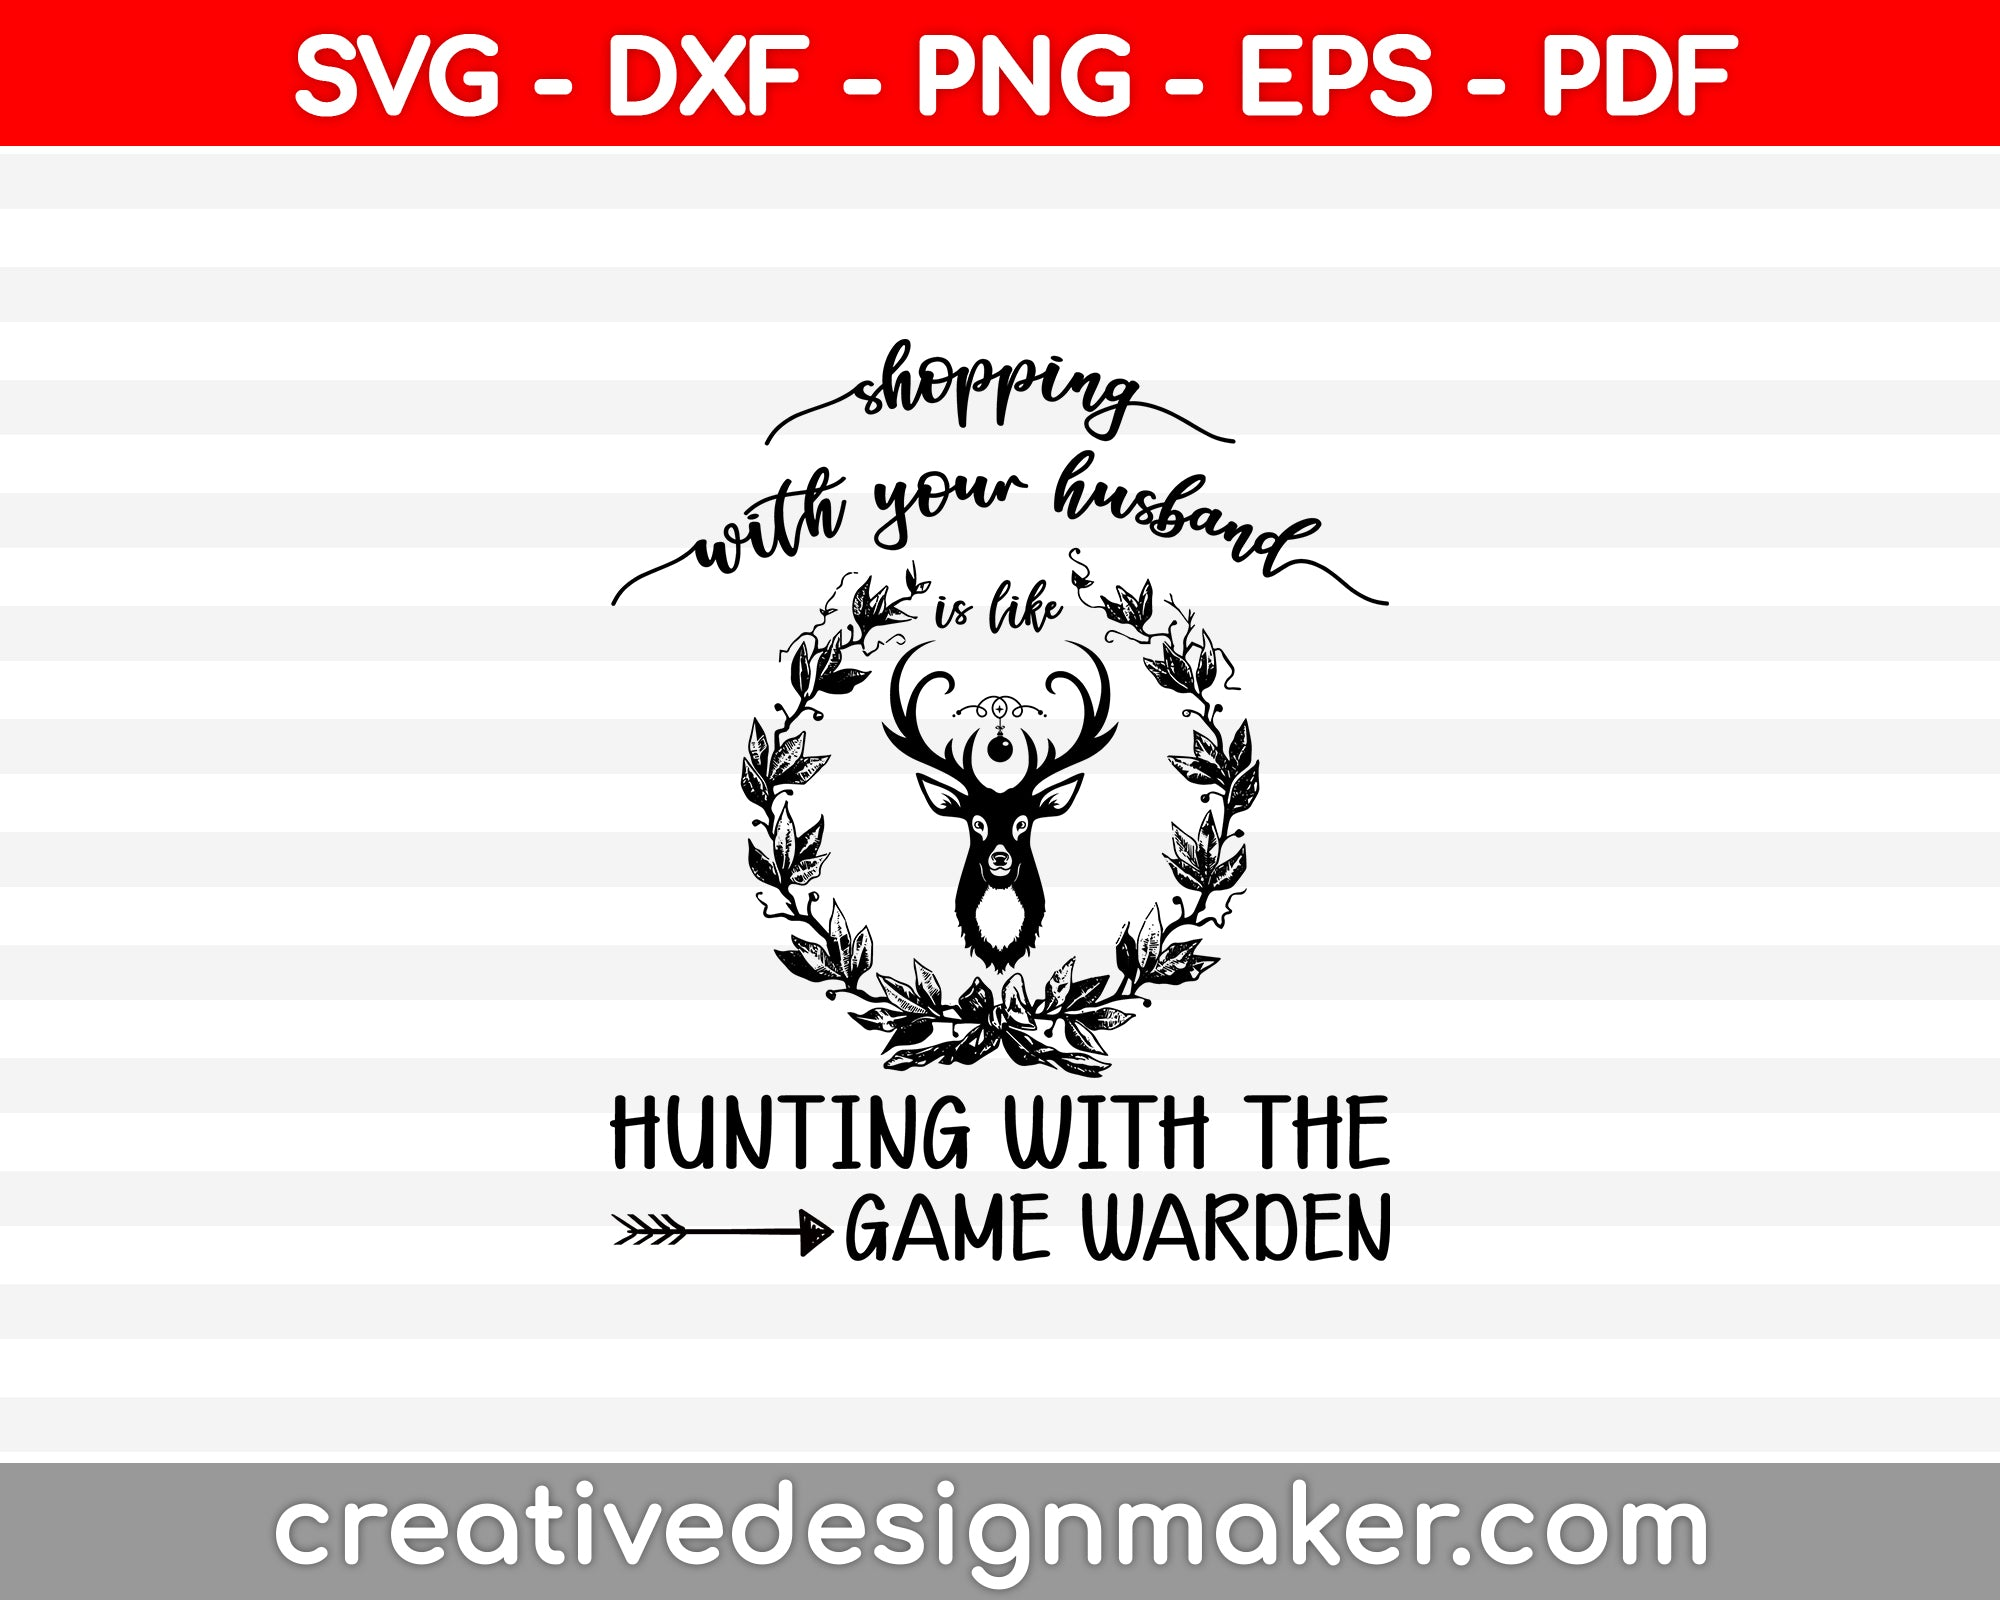 Hunting With The Game Warden SVG PNG Cutting Printable Files